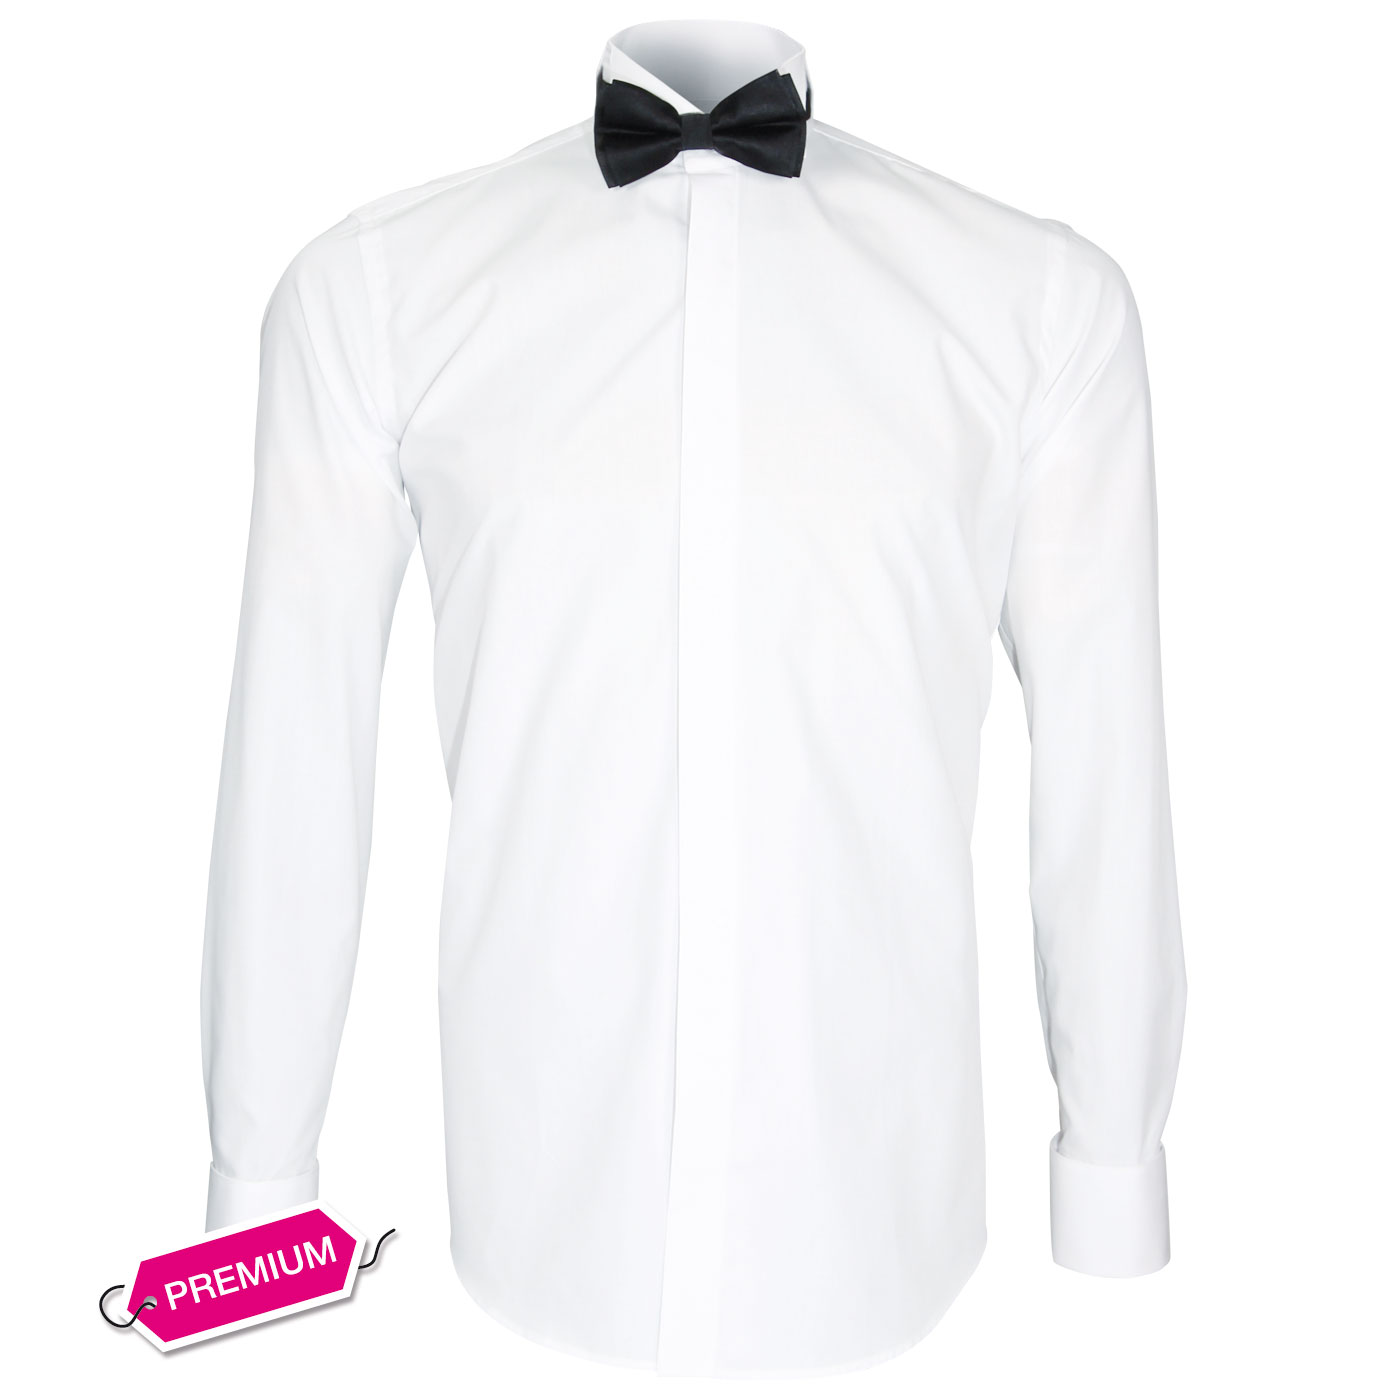 Bow Tie Collar Shirt for Ceremony Dress Shirt for Tuxedo wear